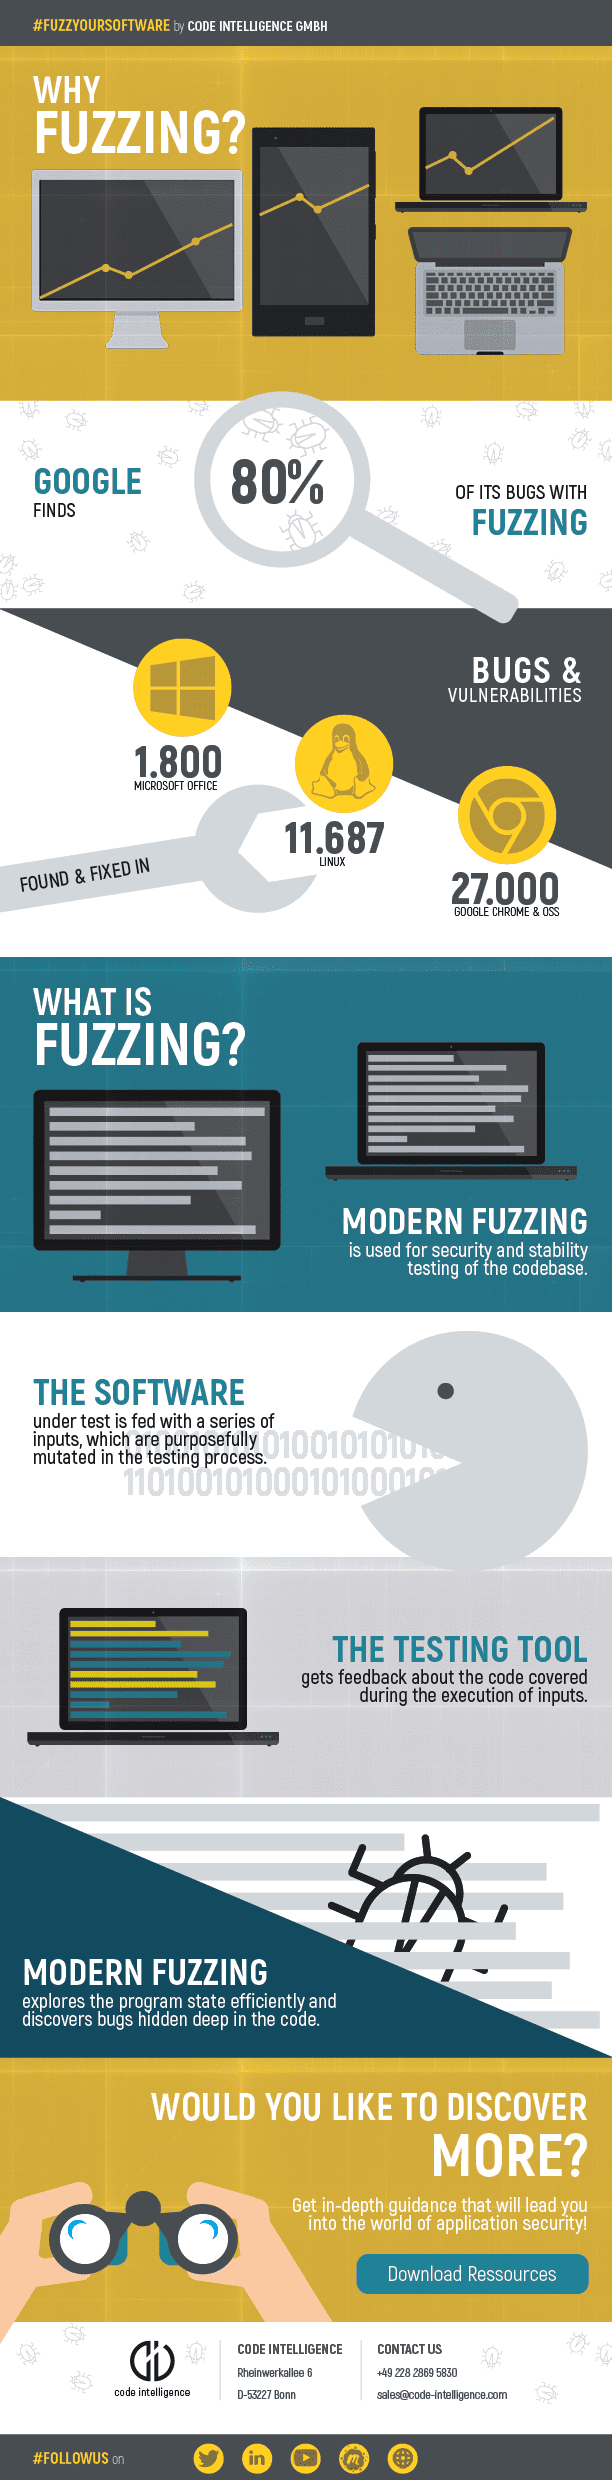 What is Fuzzing?